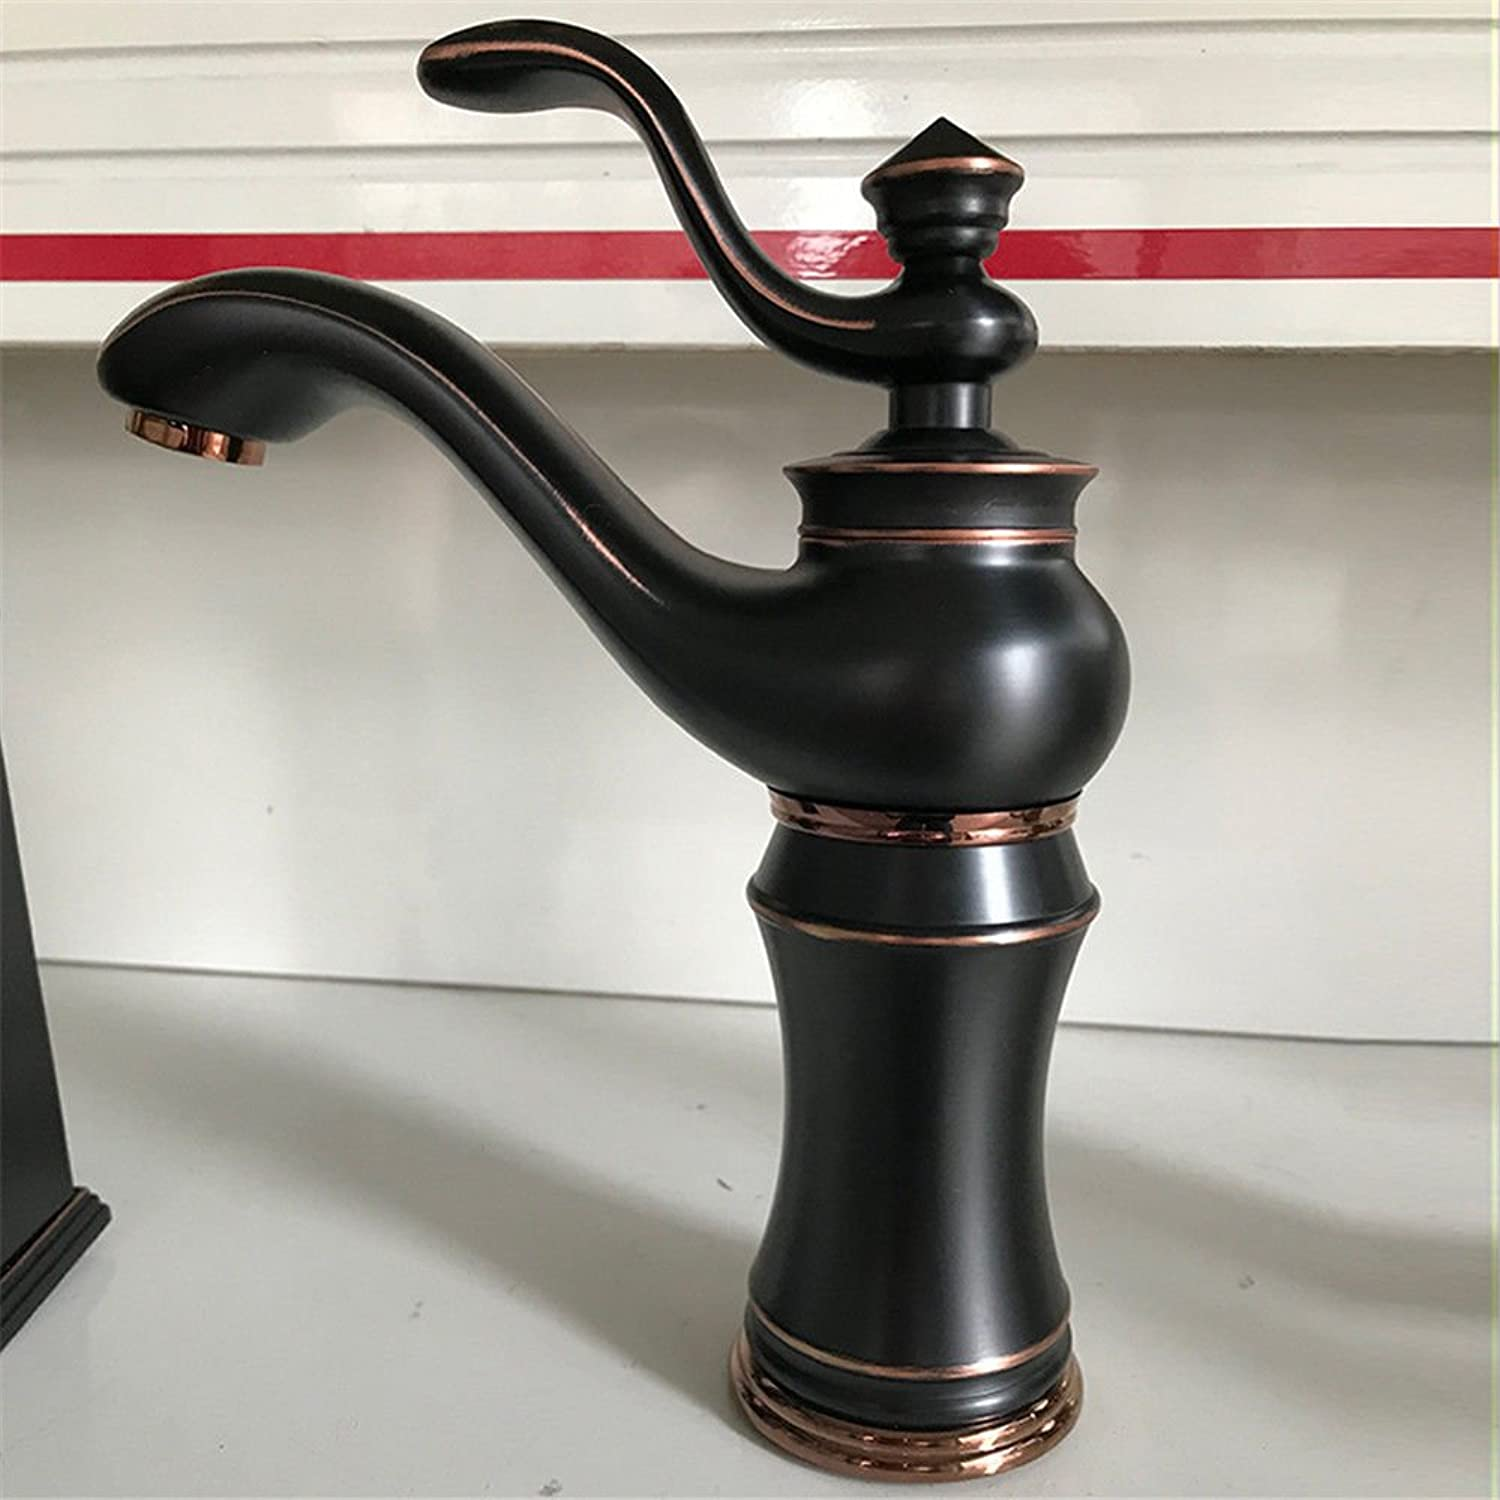 AQMMi Basin Taps Bathroom Sink Faucet Black Bronze Brass Antique Hot and Cold Water Single Hole Hot and Cold Water Bathroom Sink Faucet Basin Mixer Tap